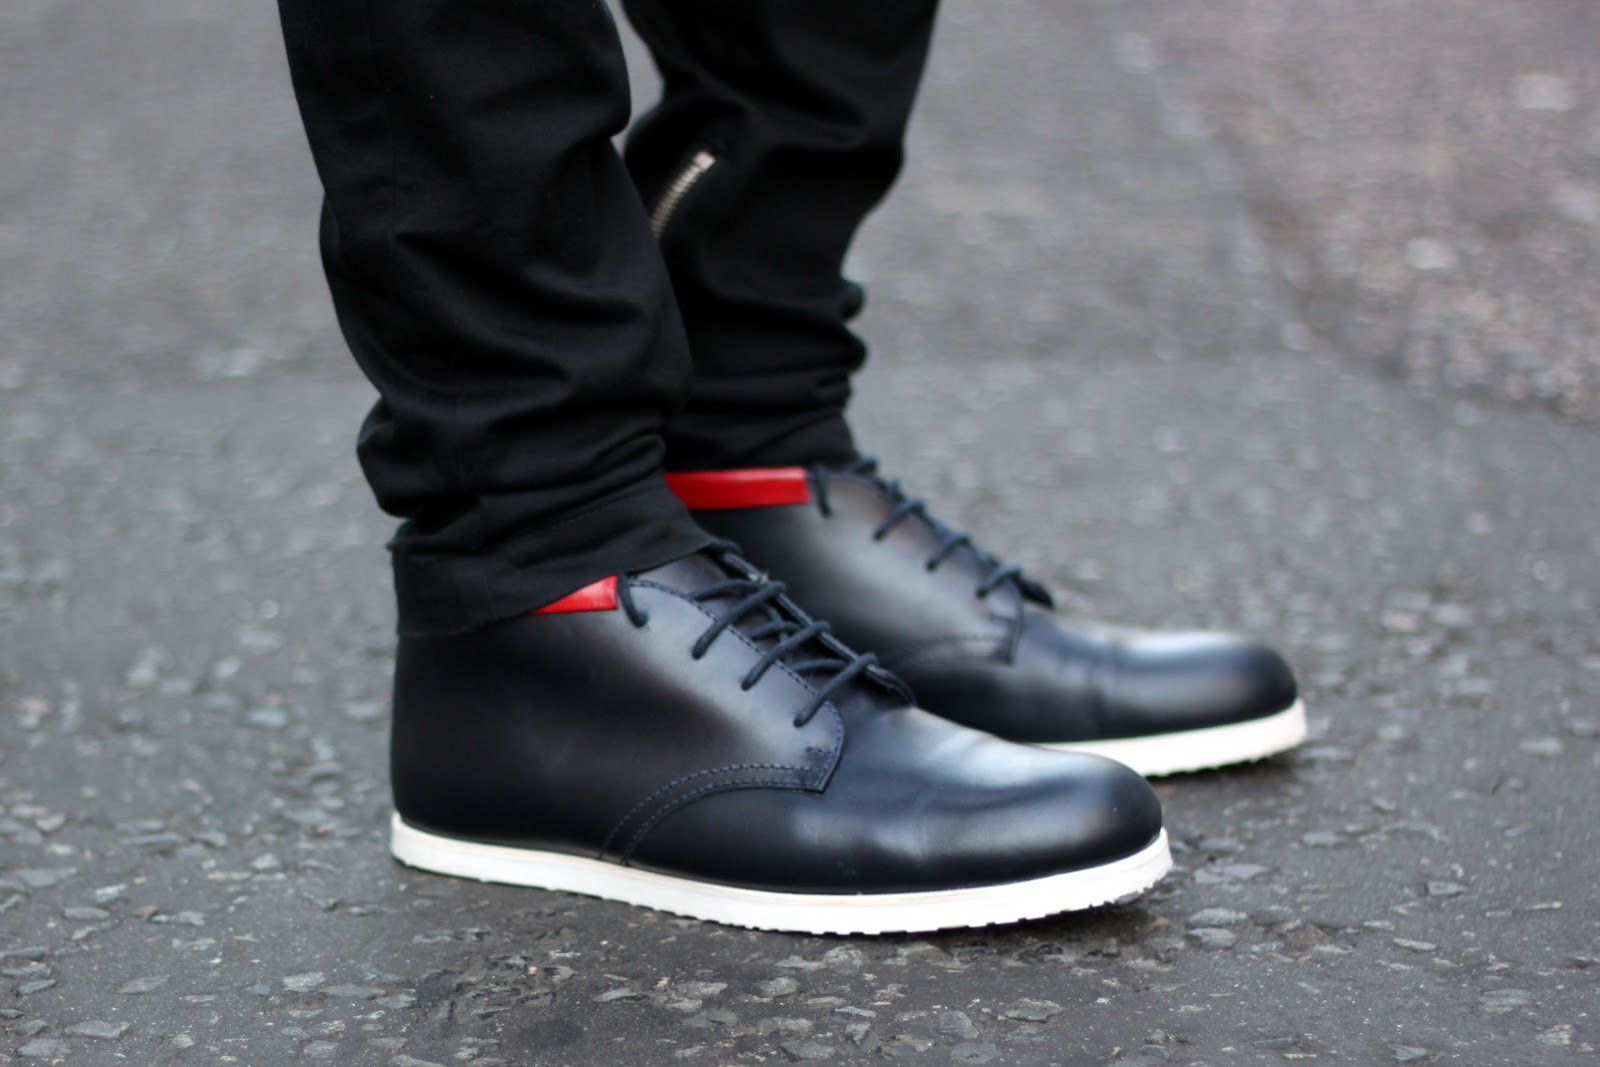 The Facehunter, SIX London and farfetch collaboration navy shoes with red stripe